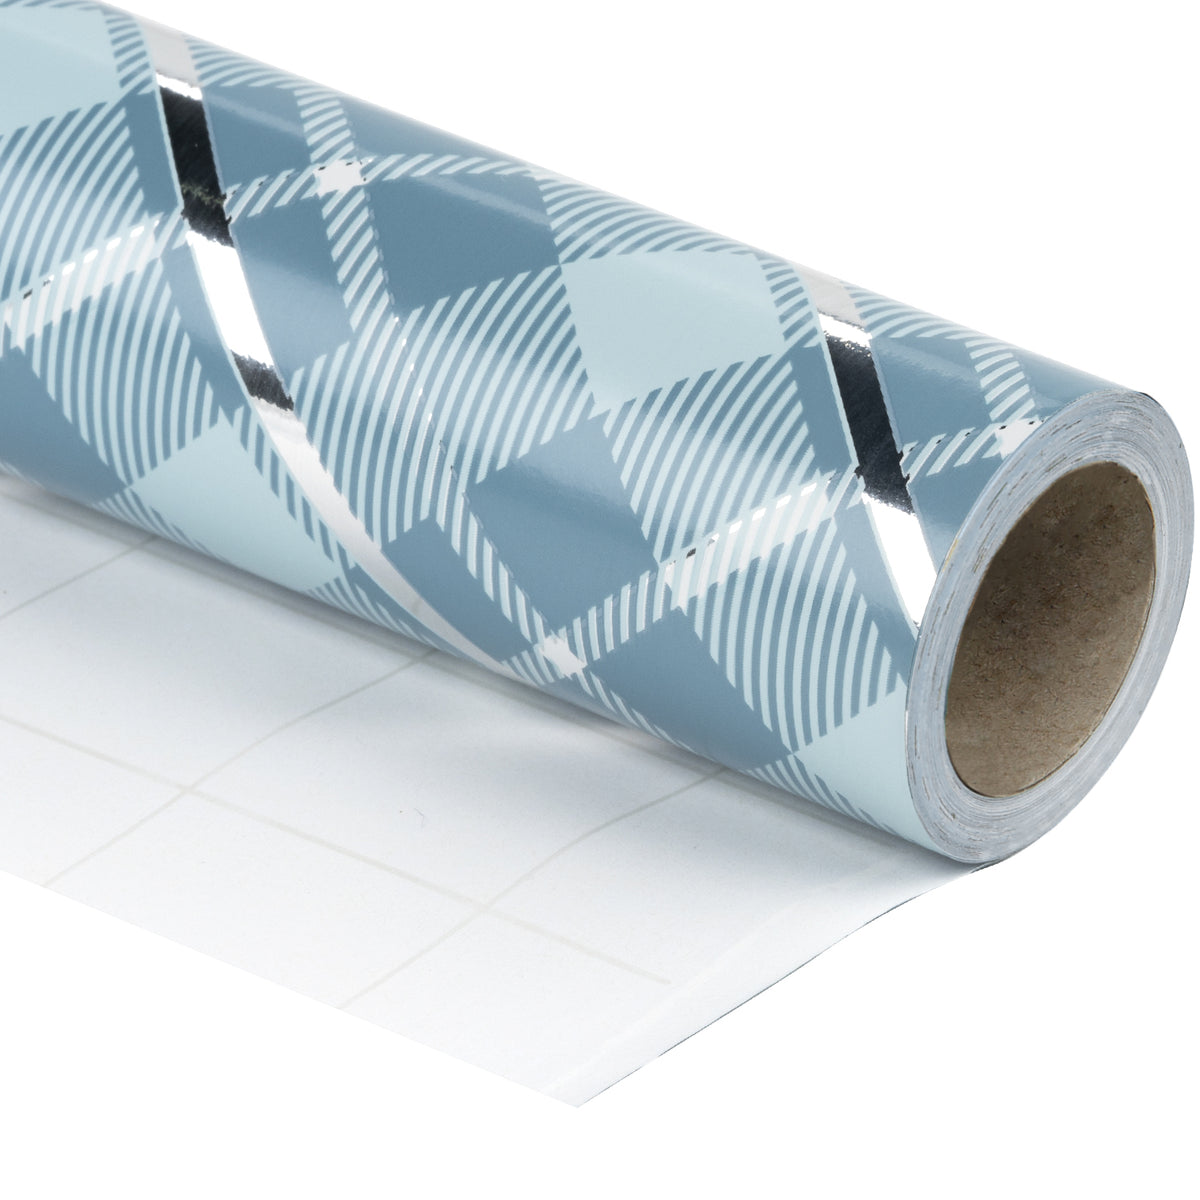 Wrapaholic-Blue-Grid-Holiday-Gift- Wrap-Design- with-Glitter- Matallic-Foil- Shine-Christmas-Gift-Wrapping-Paper Roll-1